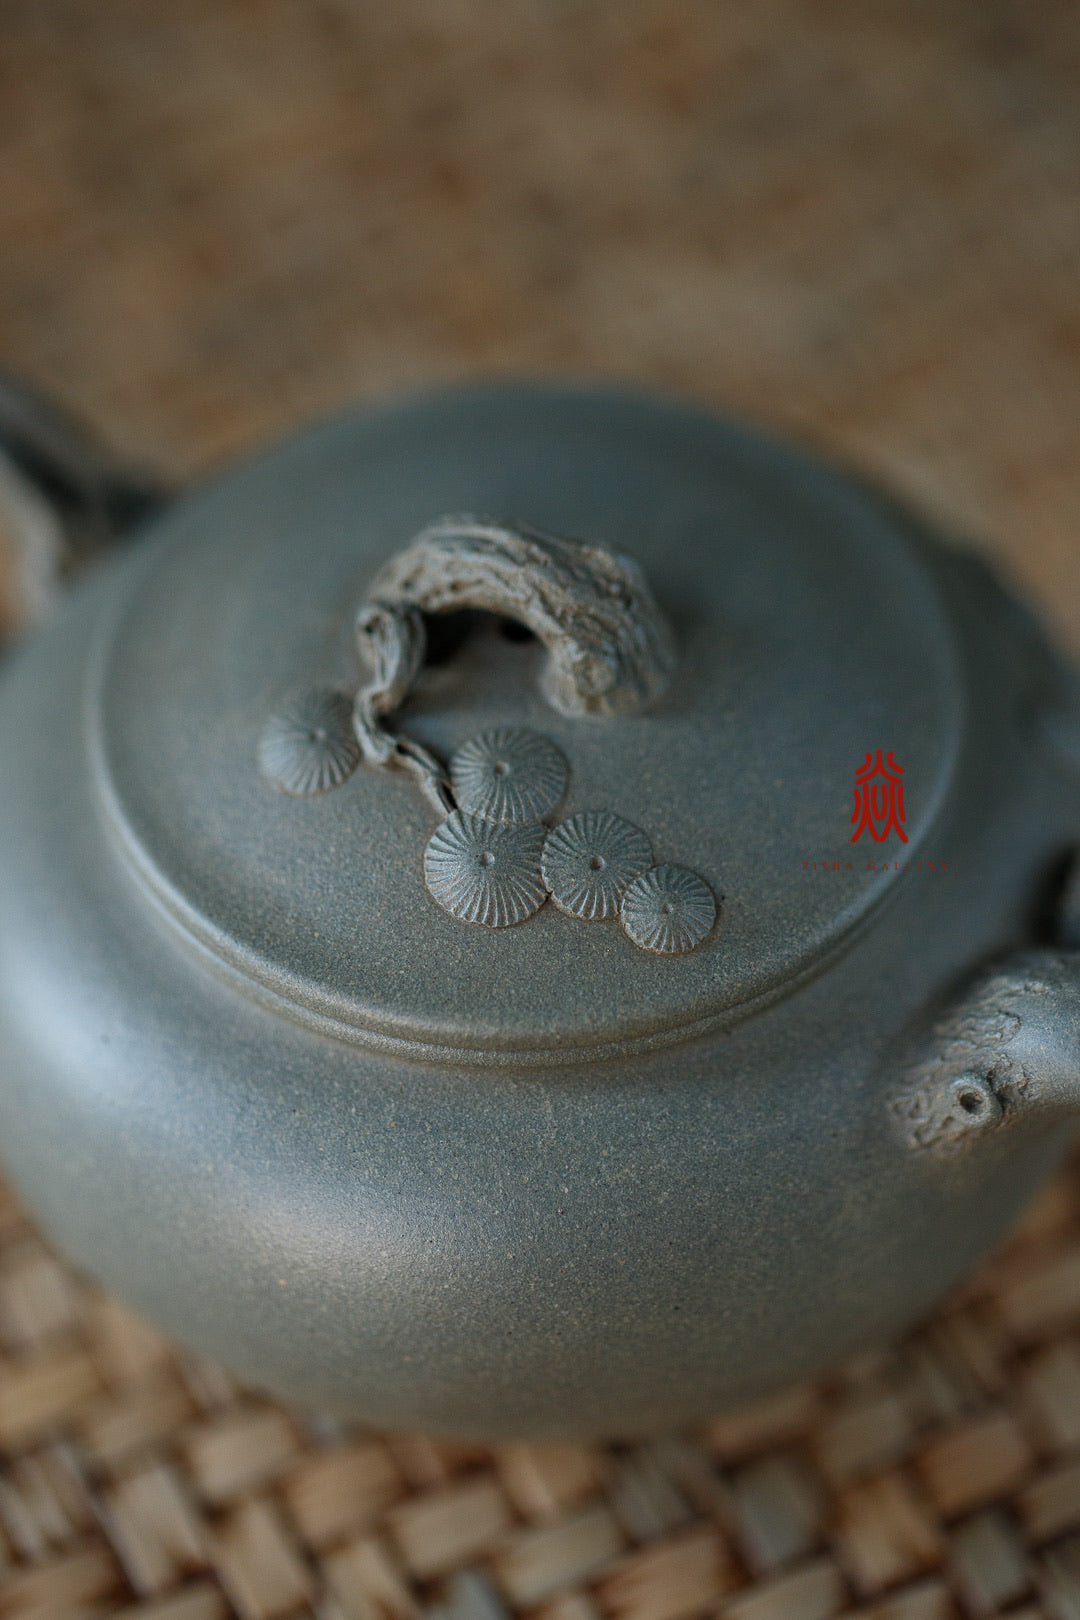 劲松 Jin Song 150ML 范志平 豆青泥 Dou Qing Ni - Yann Art Gallery